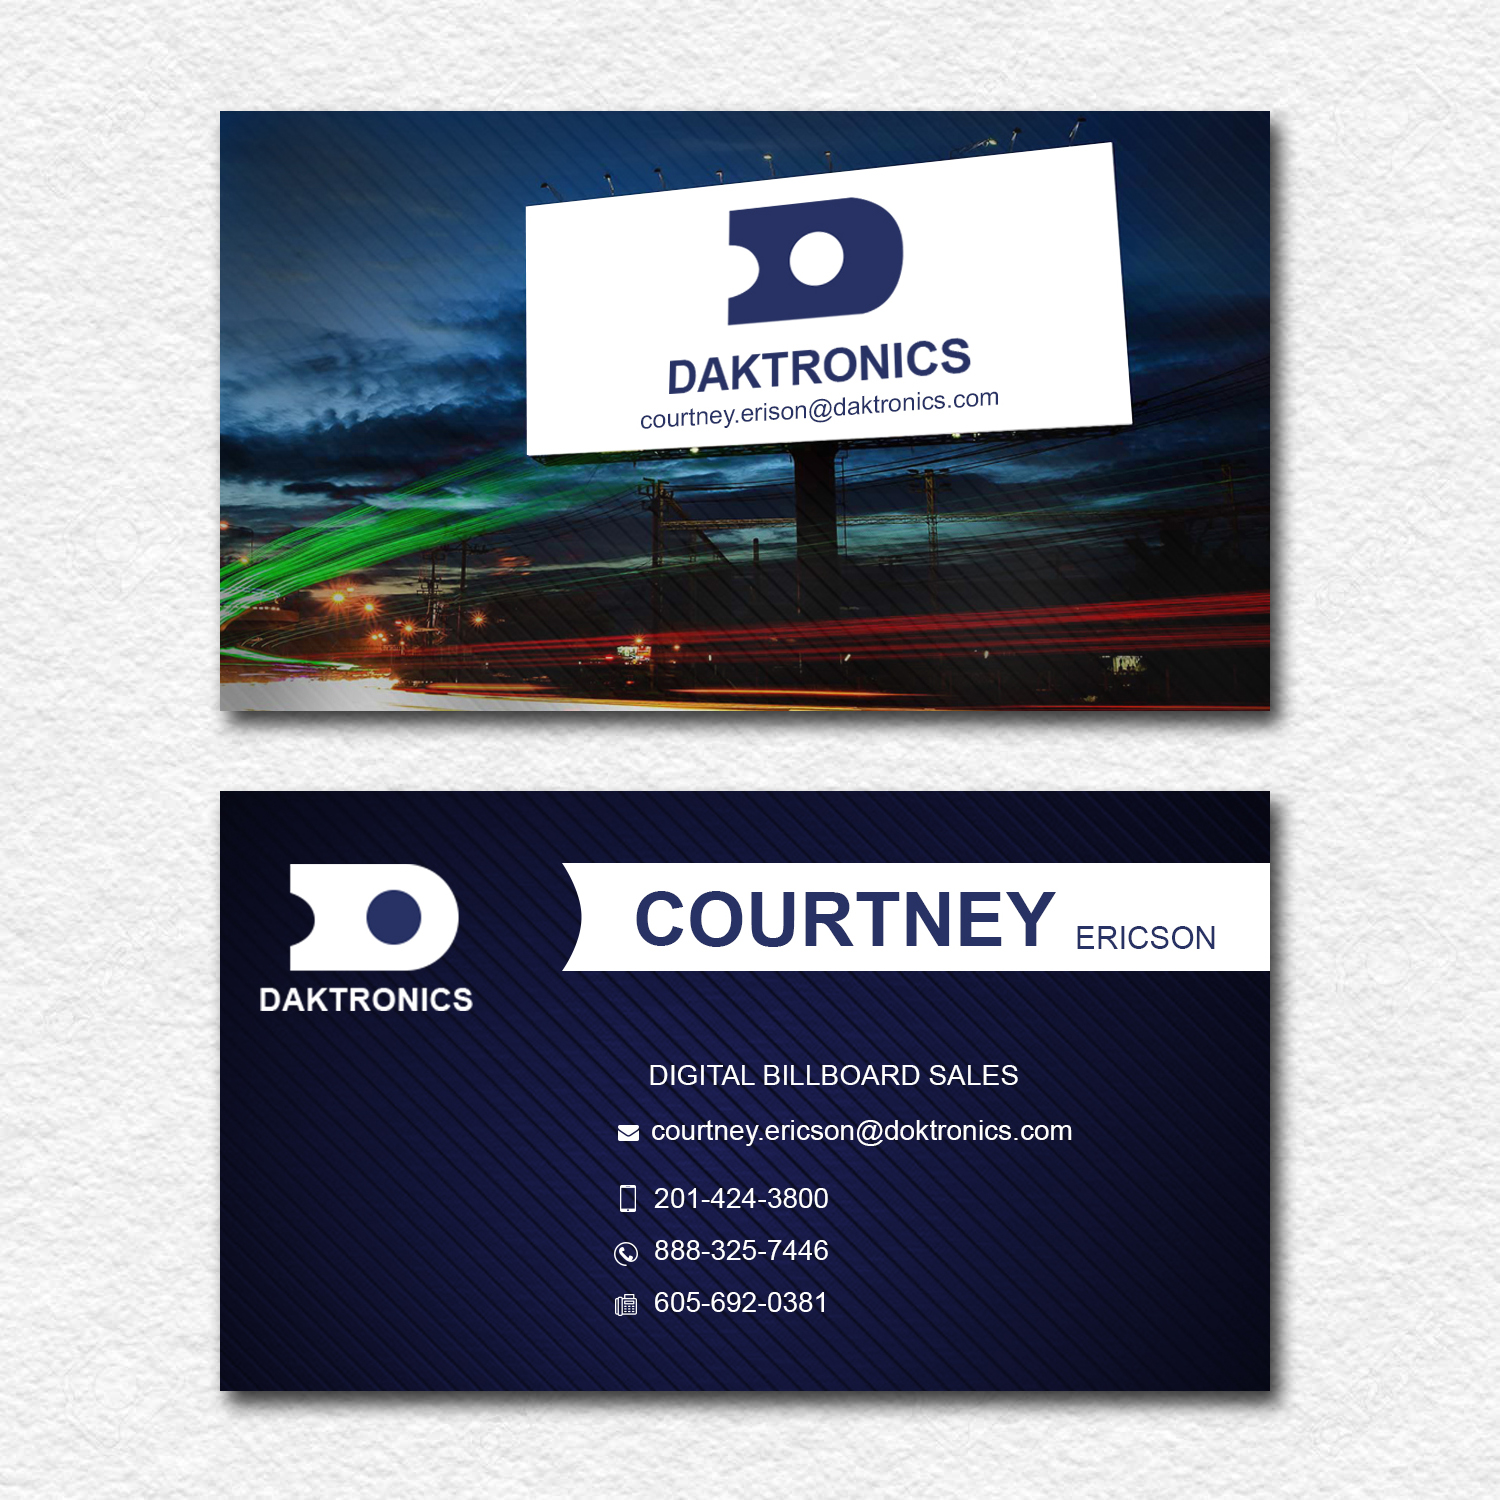 Business Card Design for a Company by Trendzdesign | Design